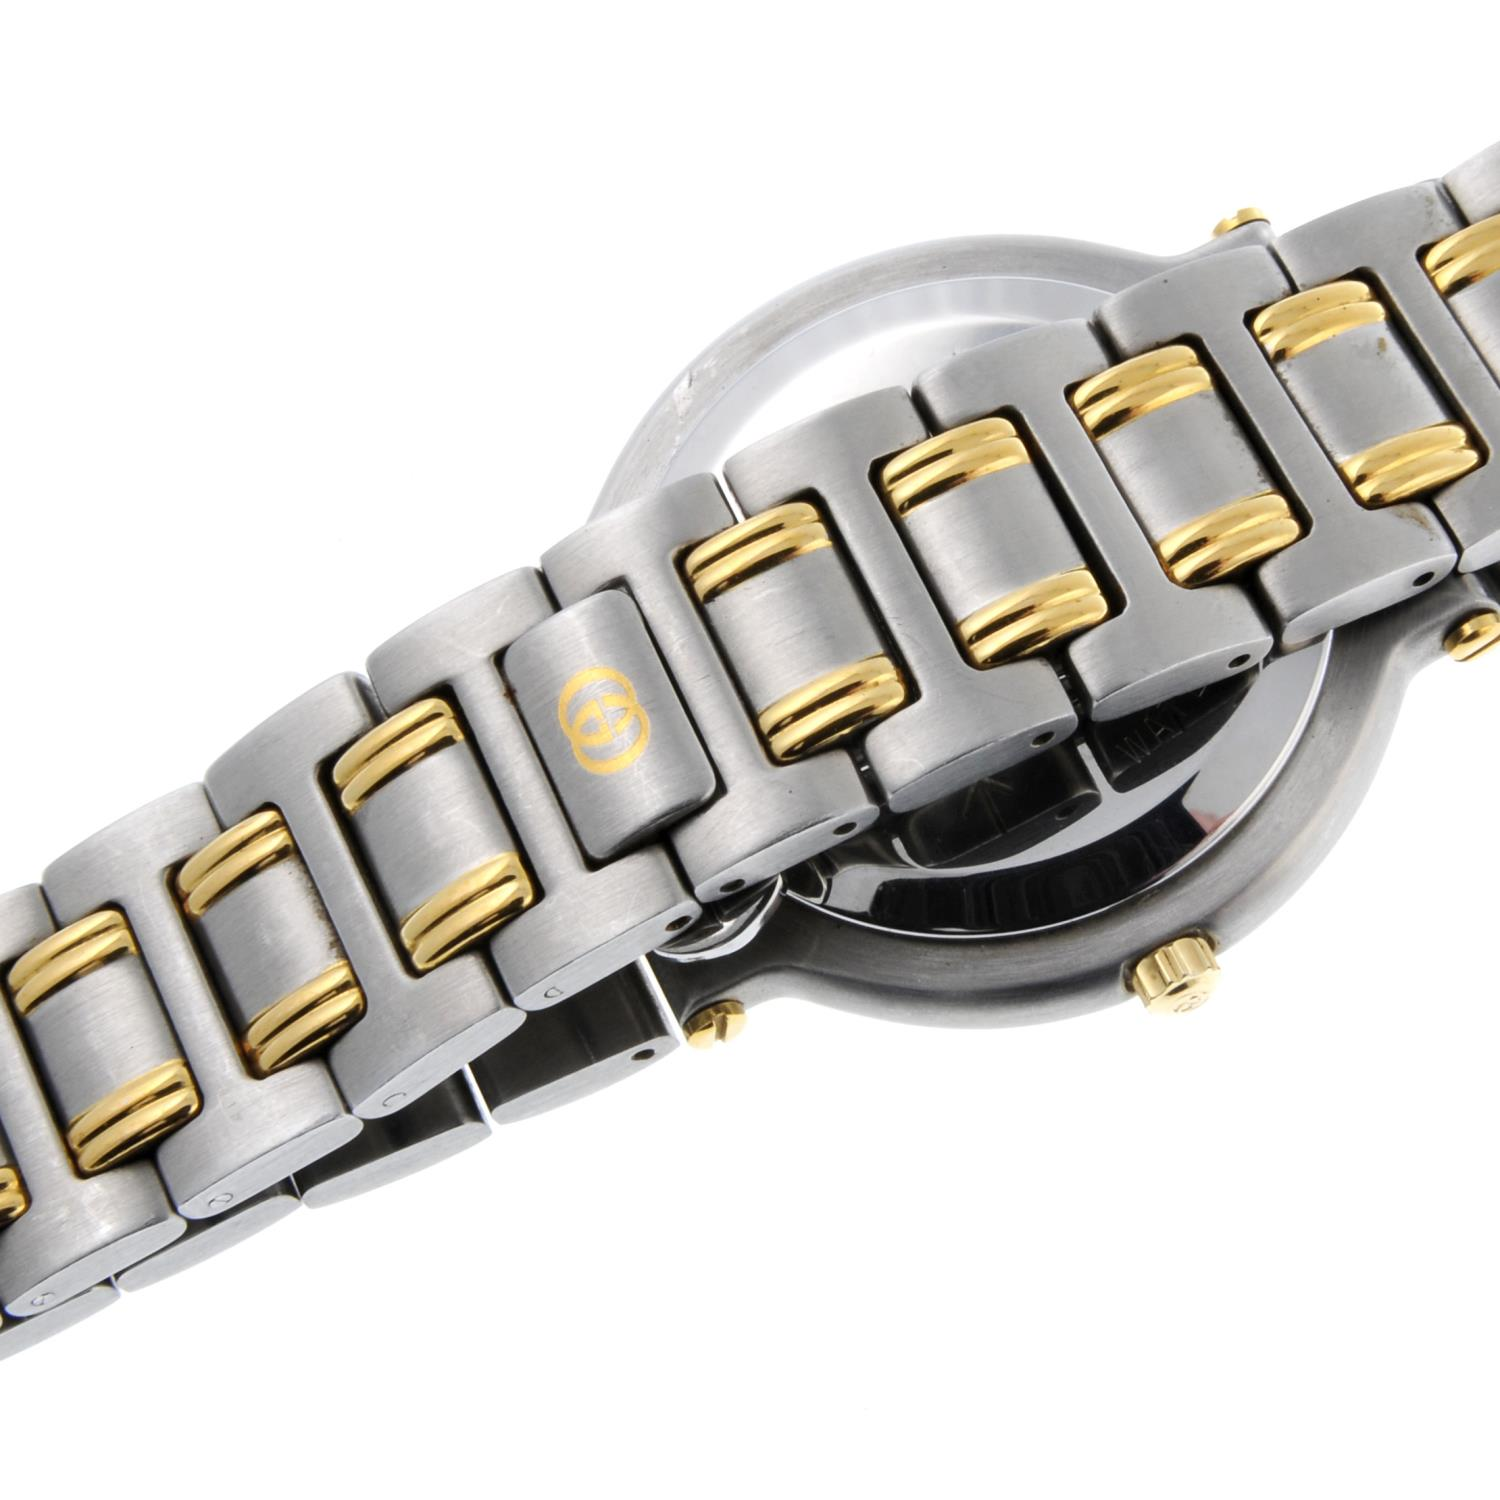 GUCCI - a mid-size 9000G bracelet watch. - Image 2 of 4